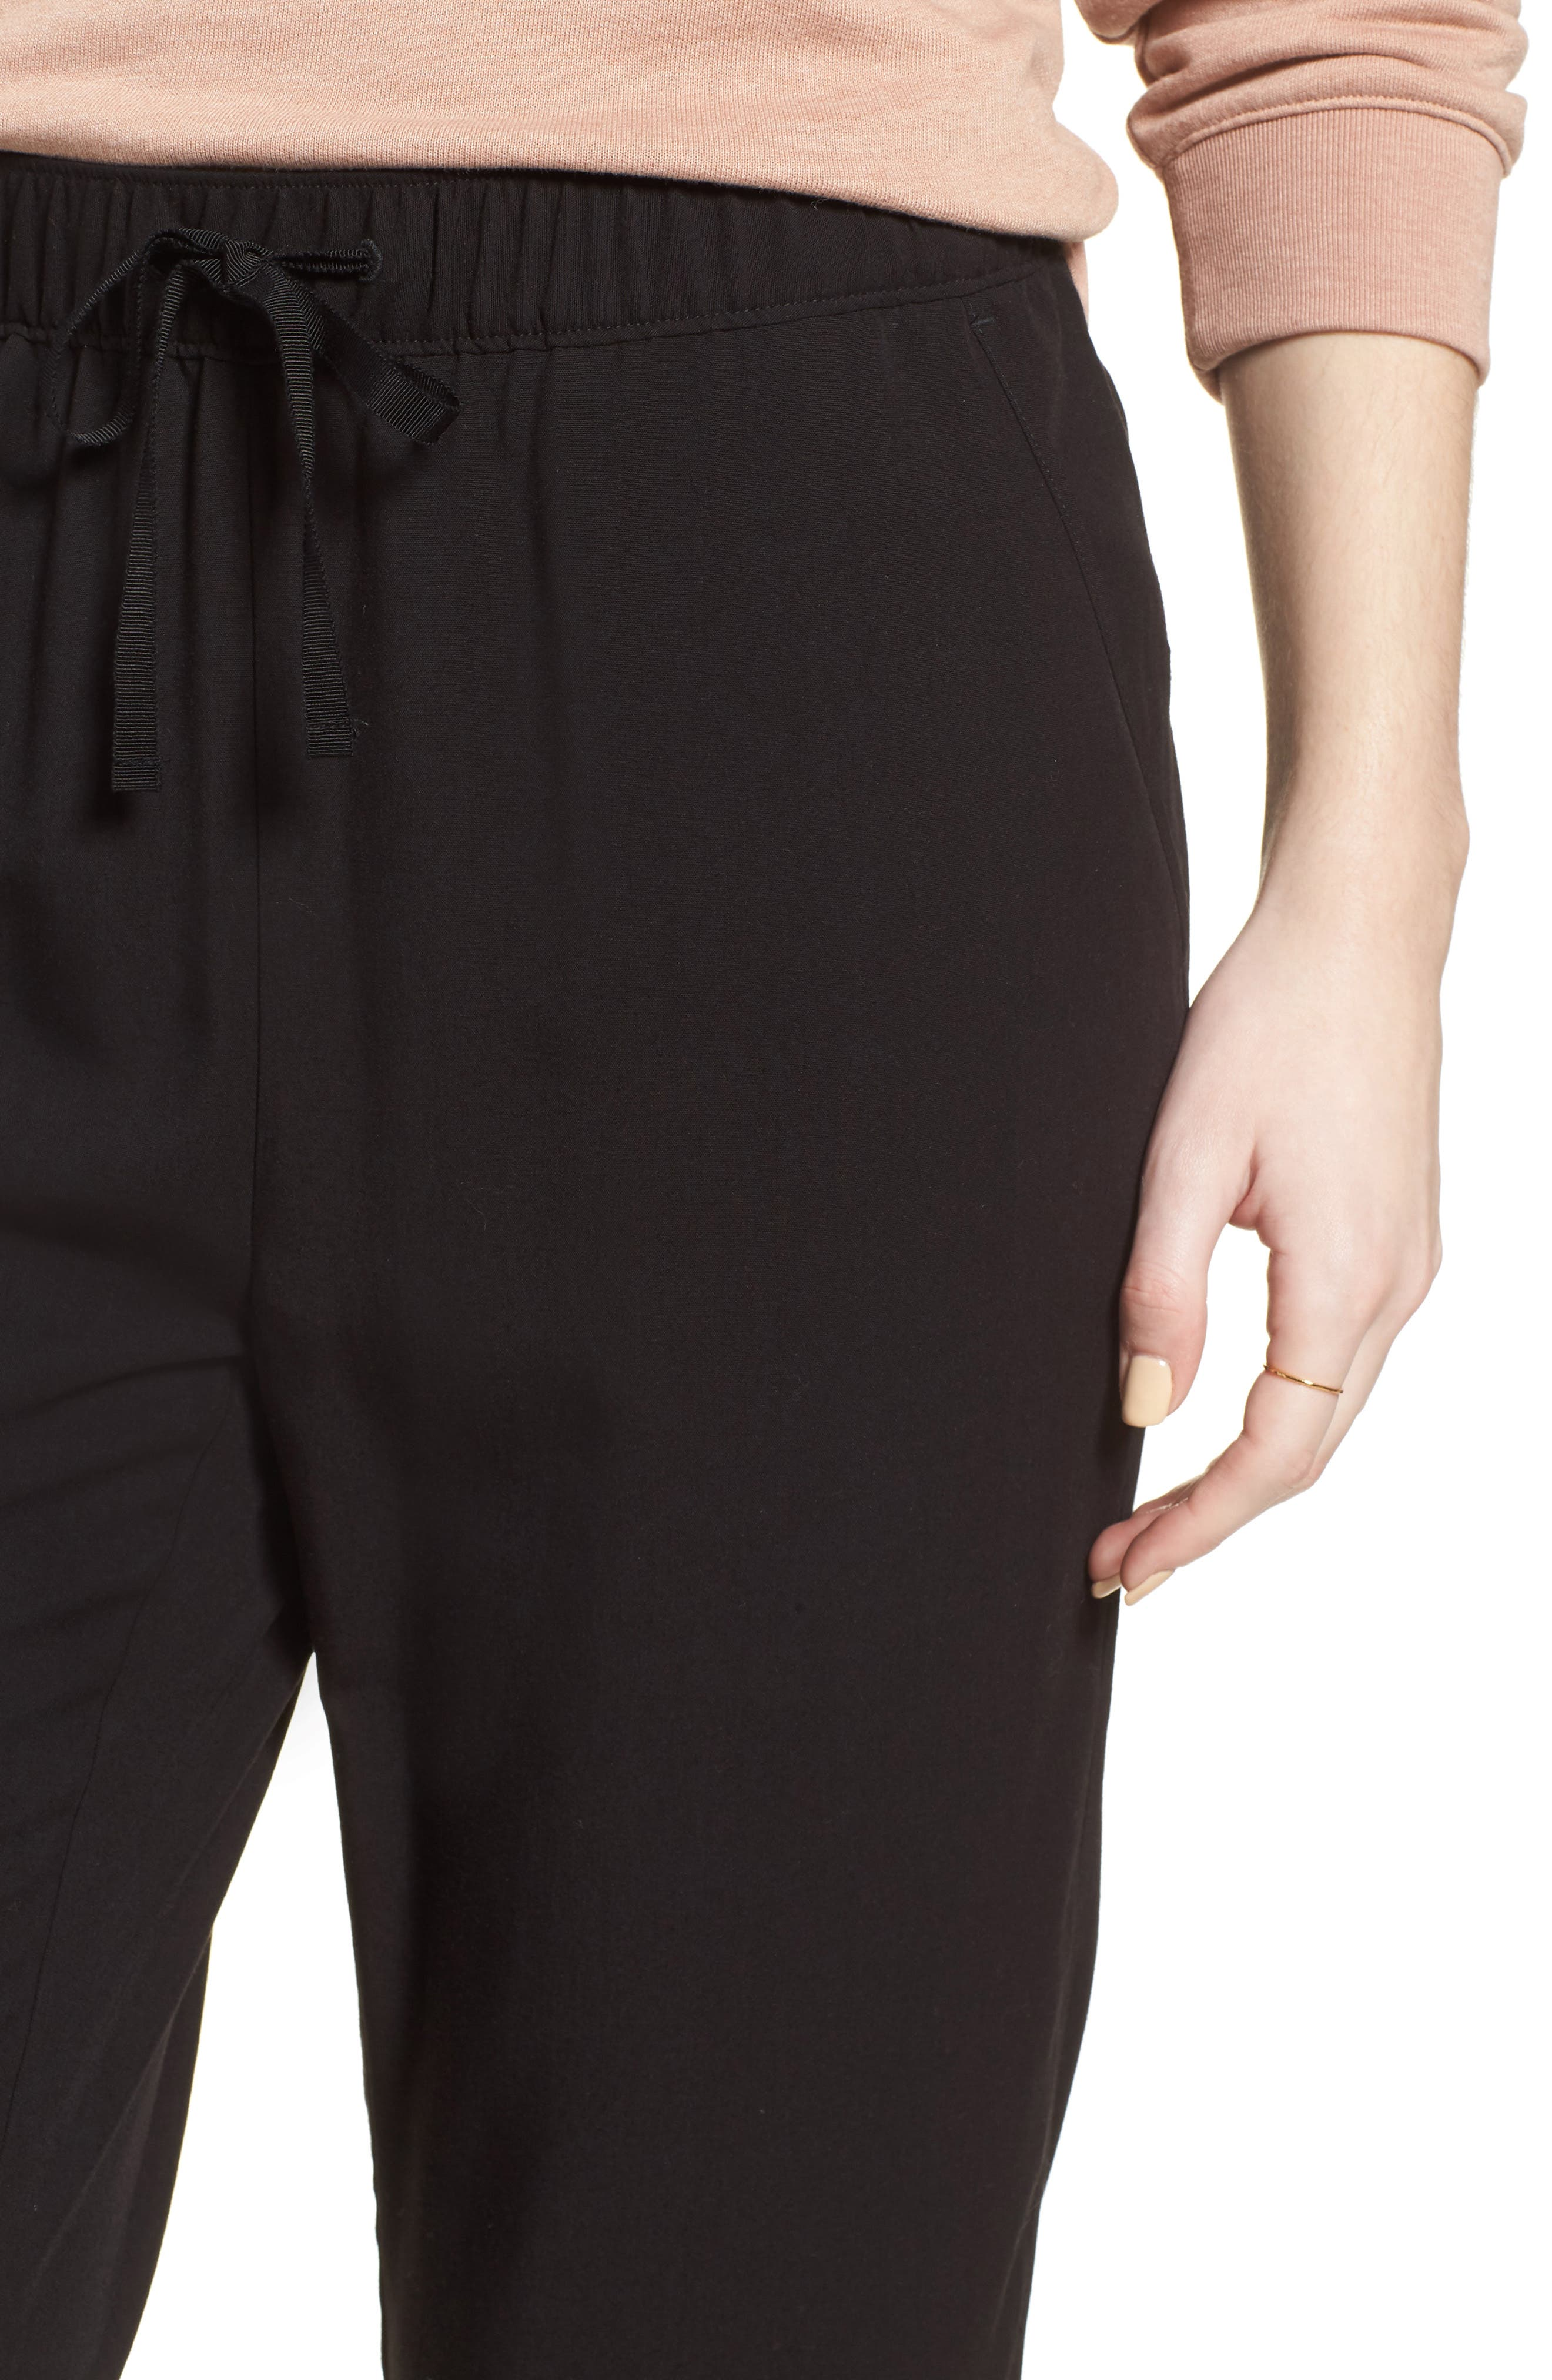 MADEWELL,                             Drawstring Track Trousers,                             Alternate thumbnail 4, color,                             001